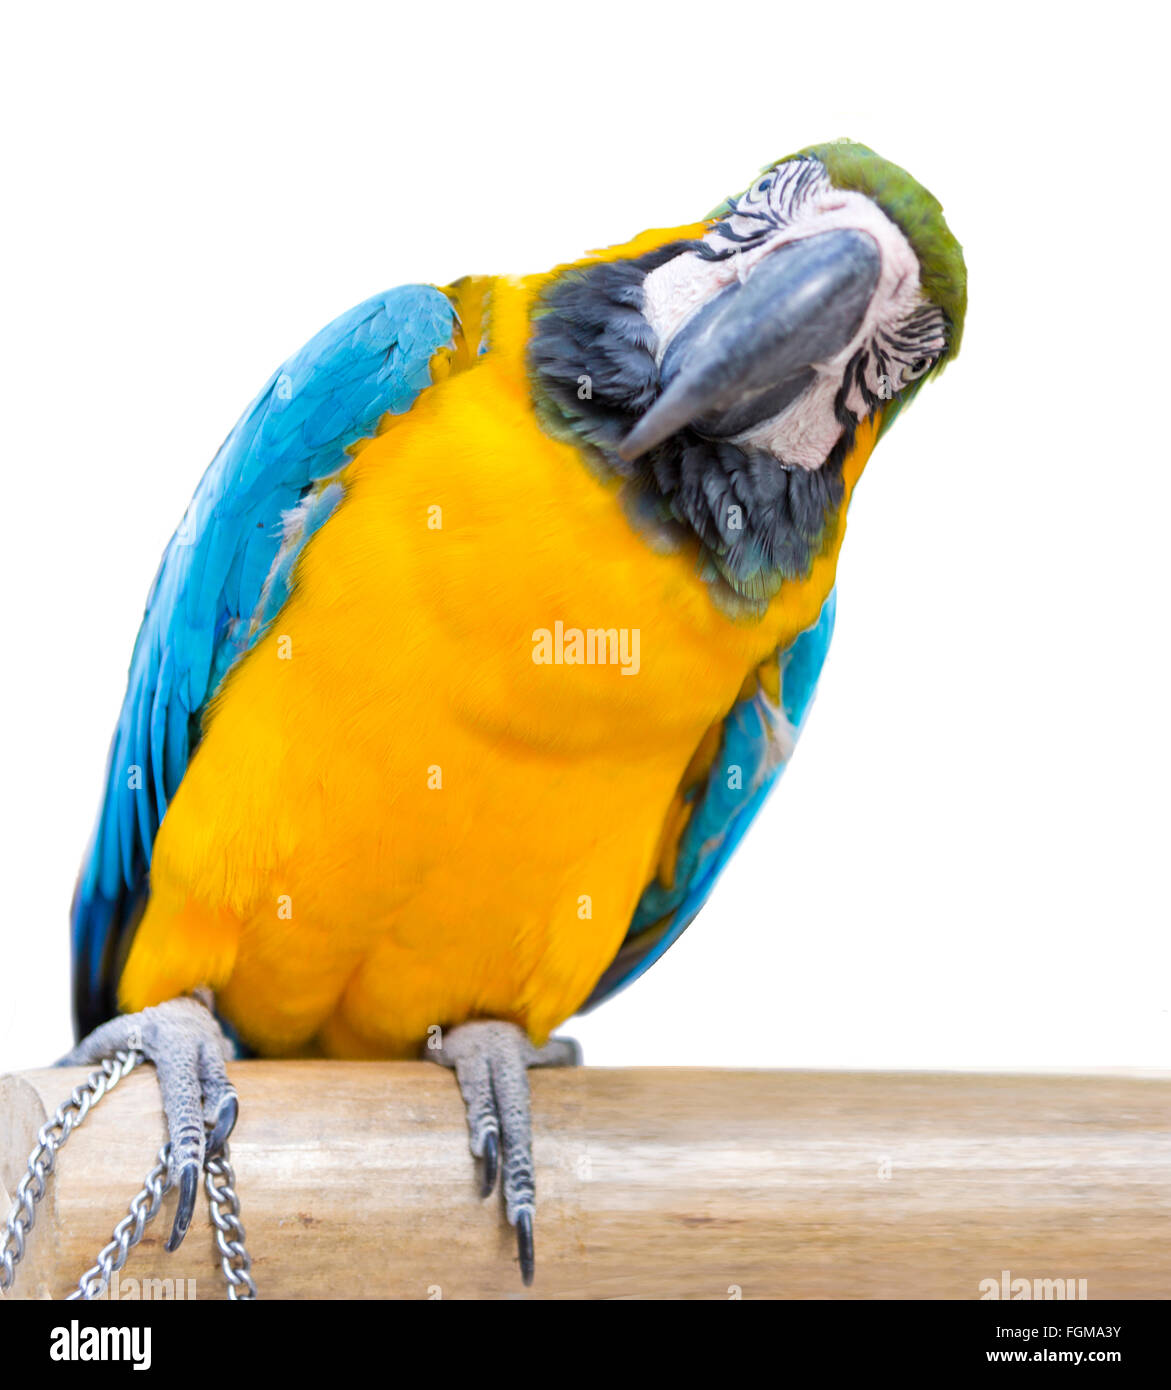 pets, bird, parrot, animals, yellow, macaw, birds, colored, blue, animal, multi, background, isolated, white, portrait, - Stock Image